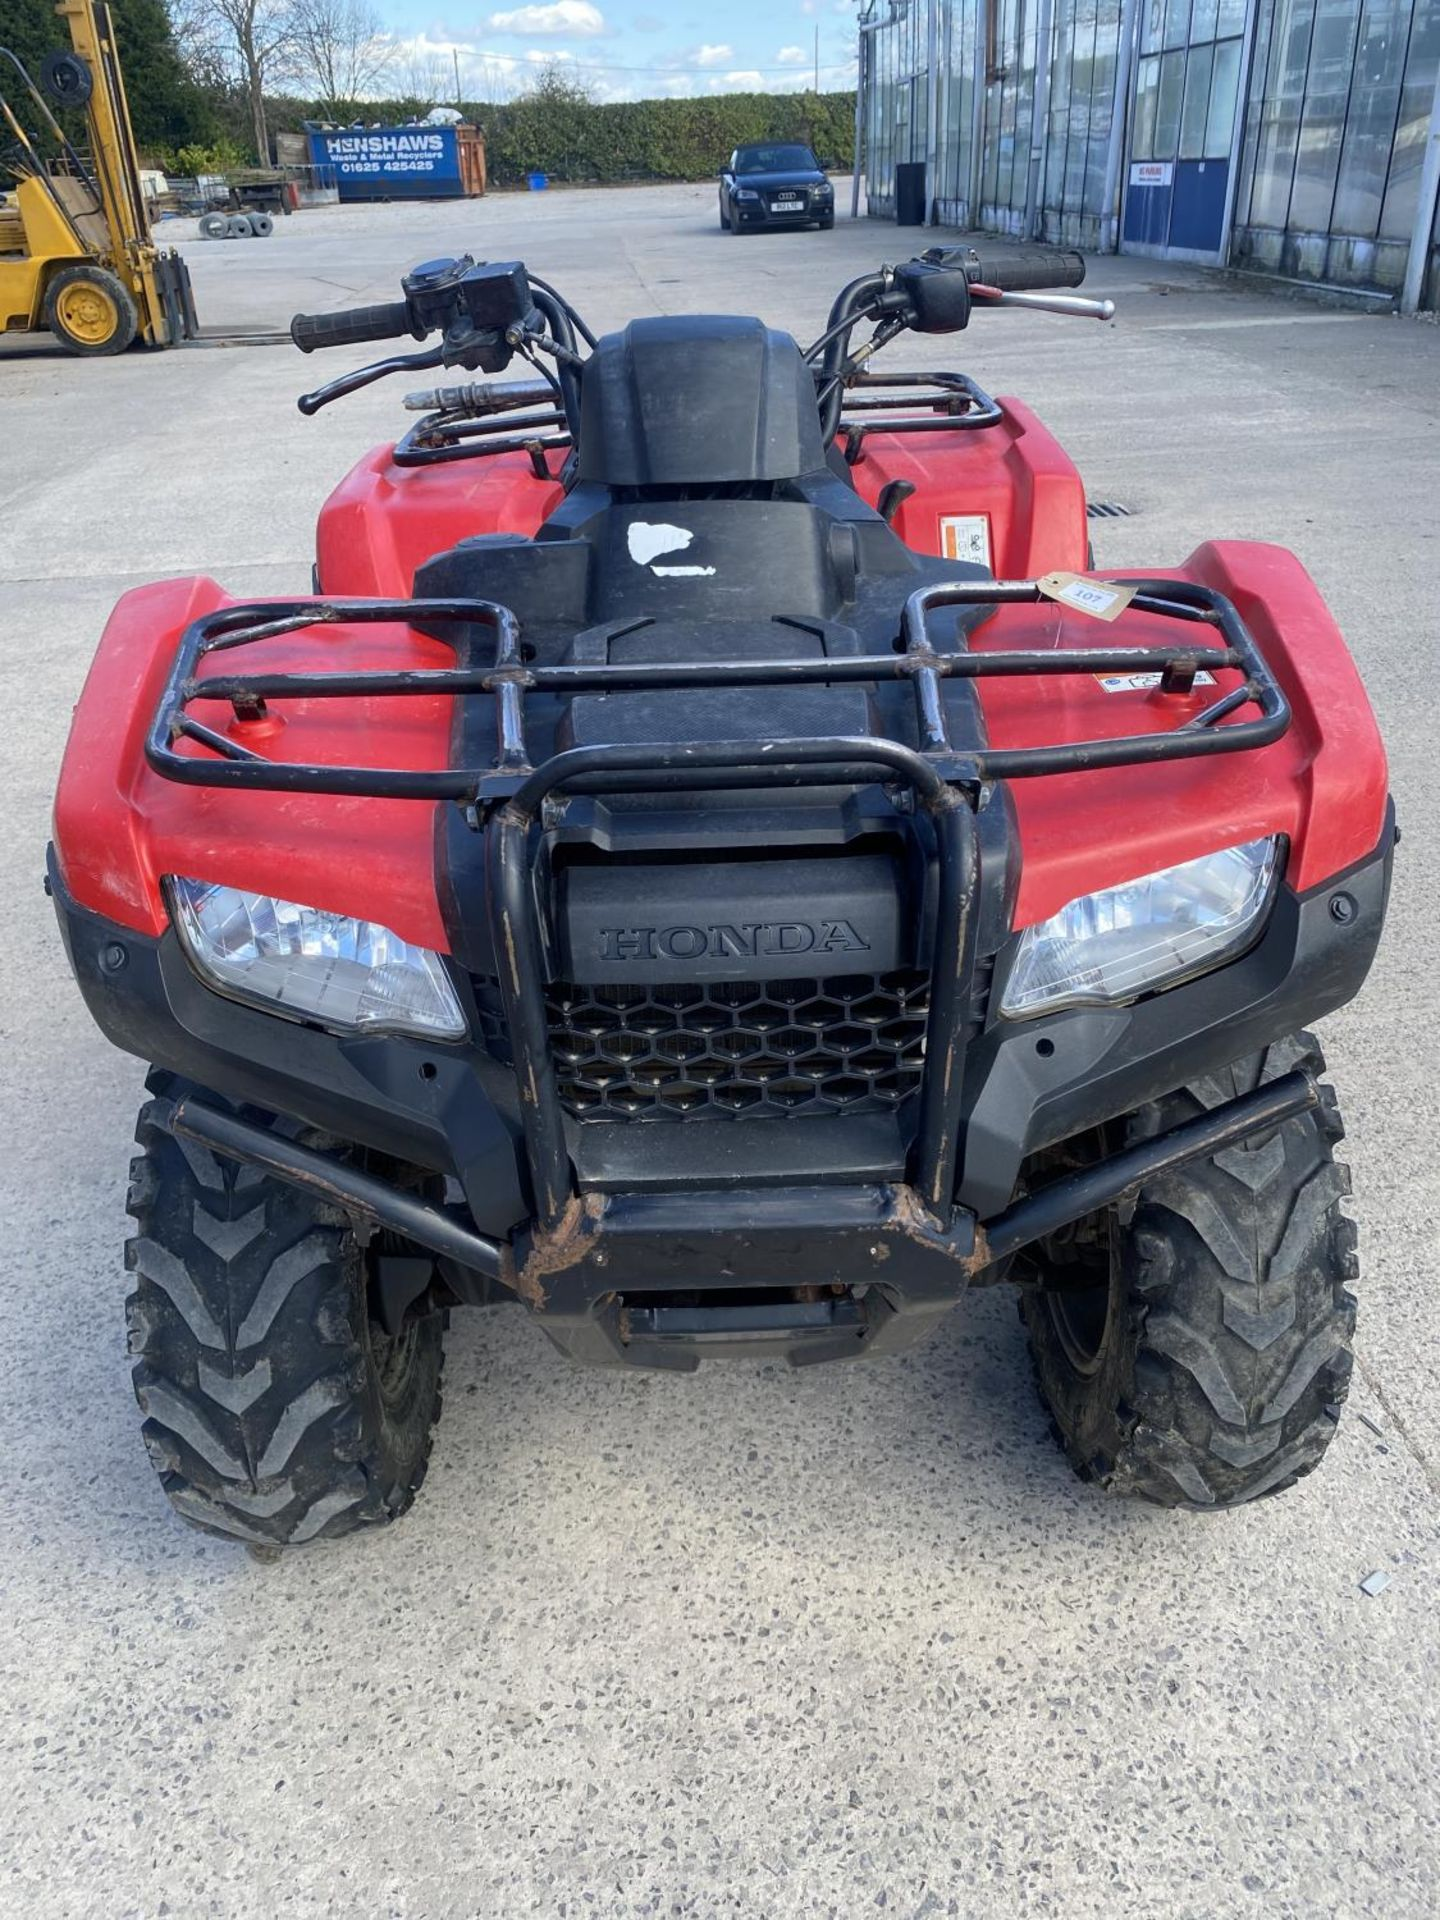 A 2017 HONDA TRX 420 QUAD BIKE - SEE VIDEO OF VEHICLE STARTING AND RUNNING AT https://www.youtube. - Image 3 of 10